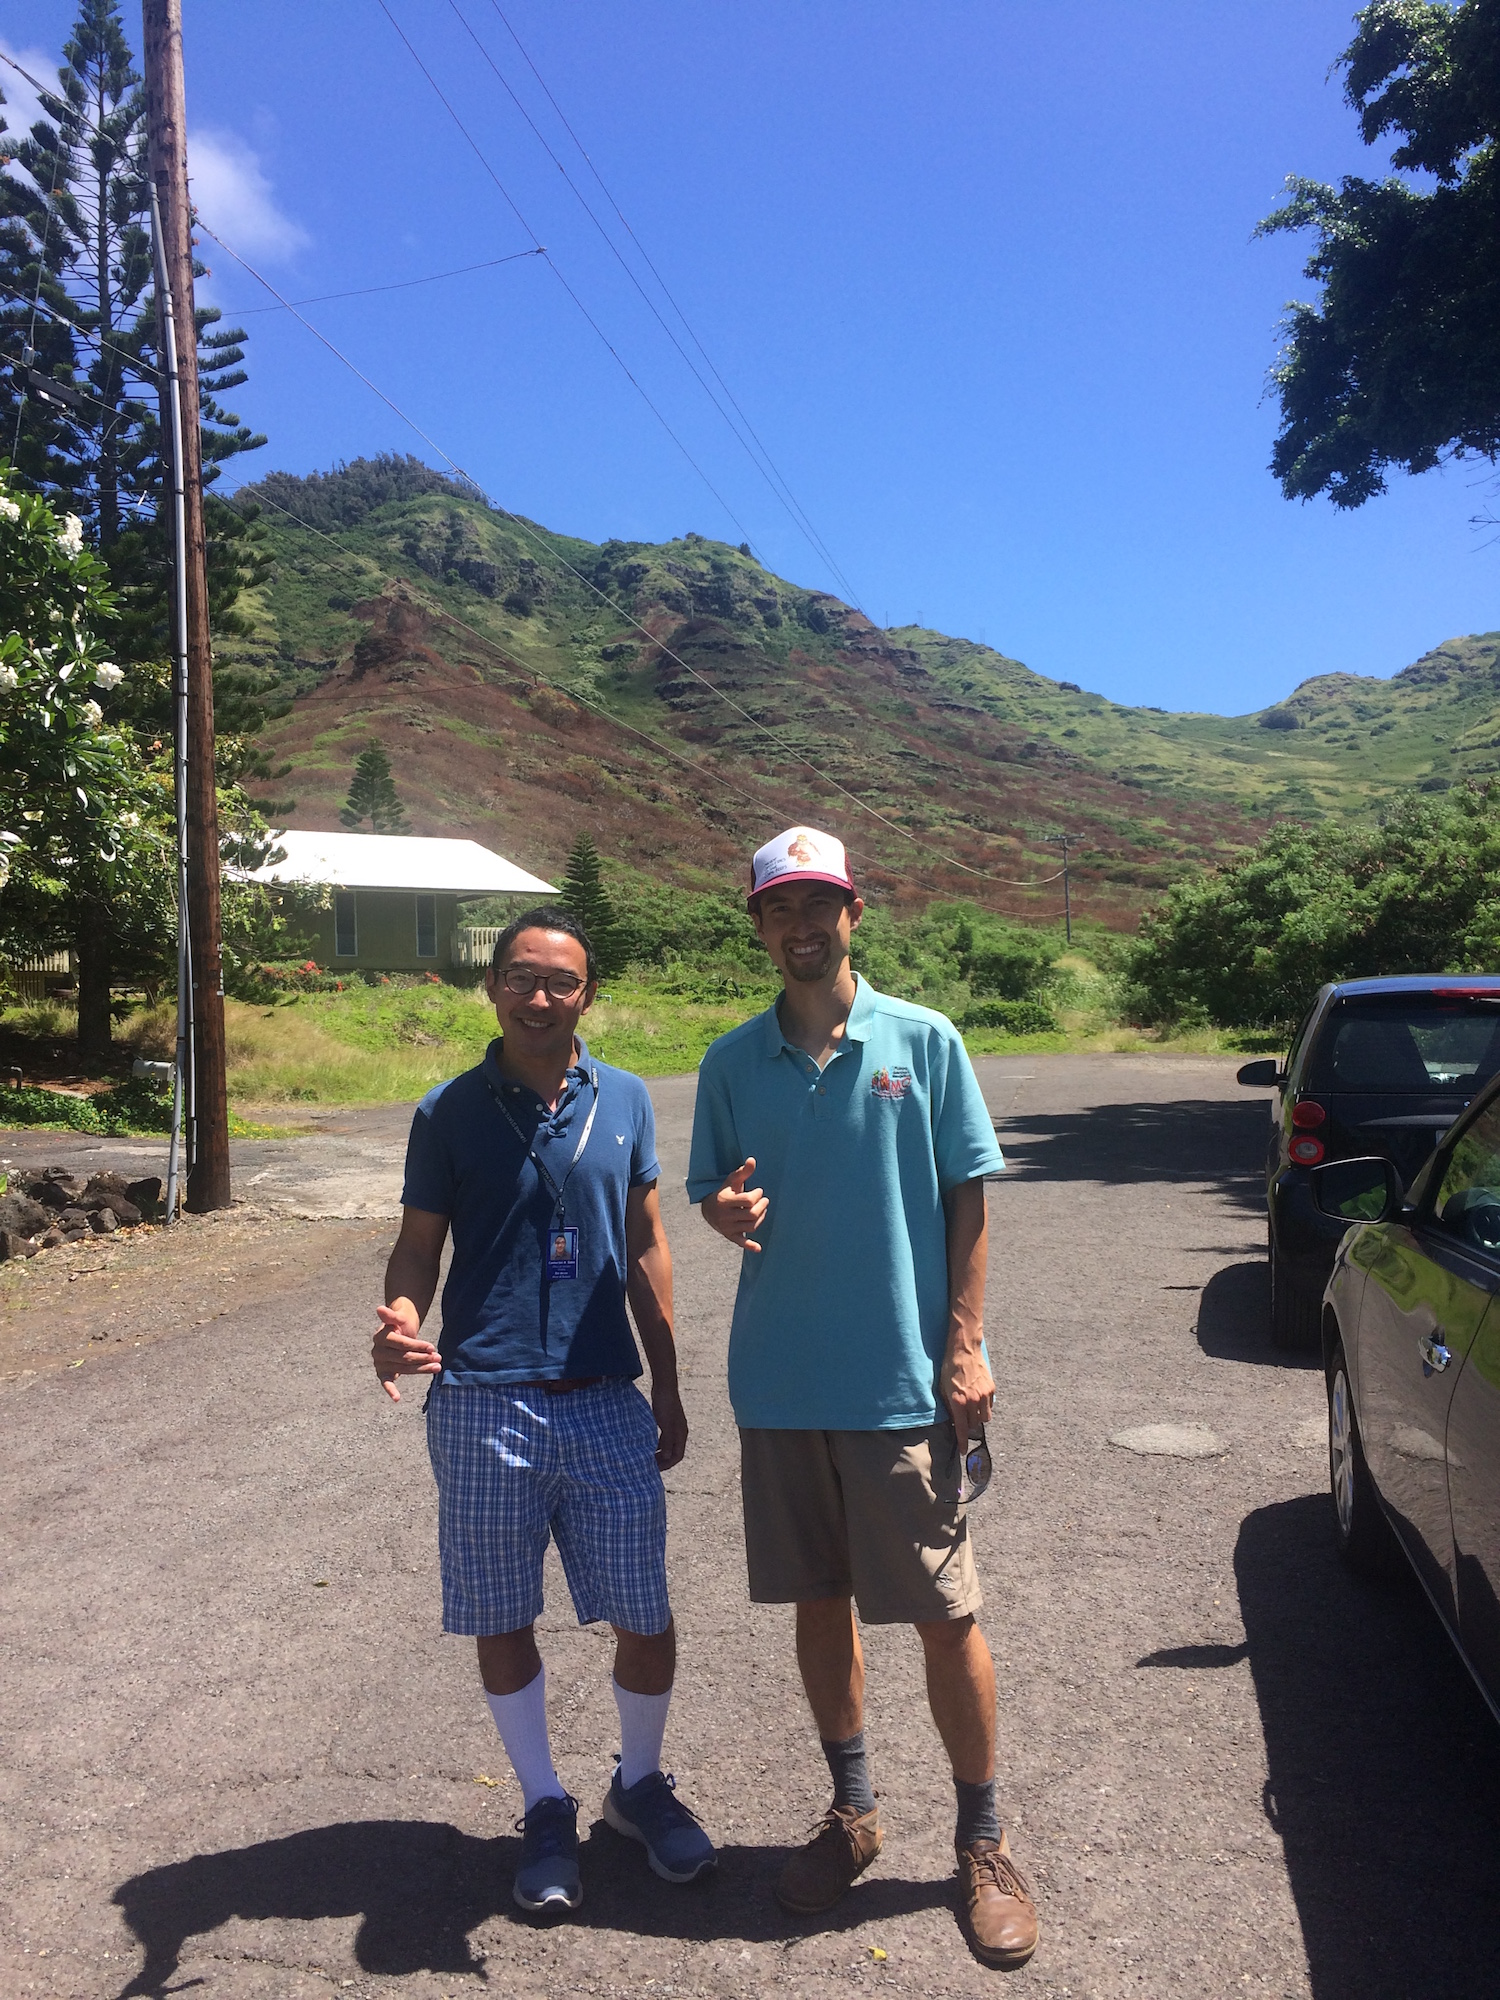 Cameron Sato (left), Office of Senator Stanley Chang, and Pablo Beimler (right), HWMO in front of Kamilonui Valley burn scar.